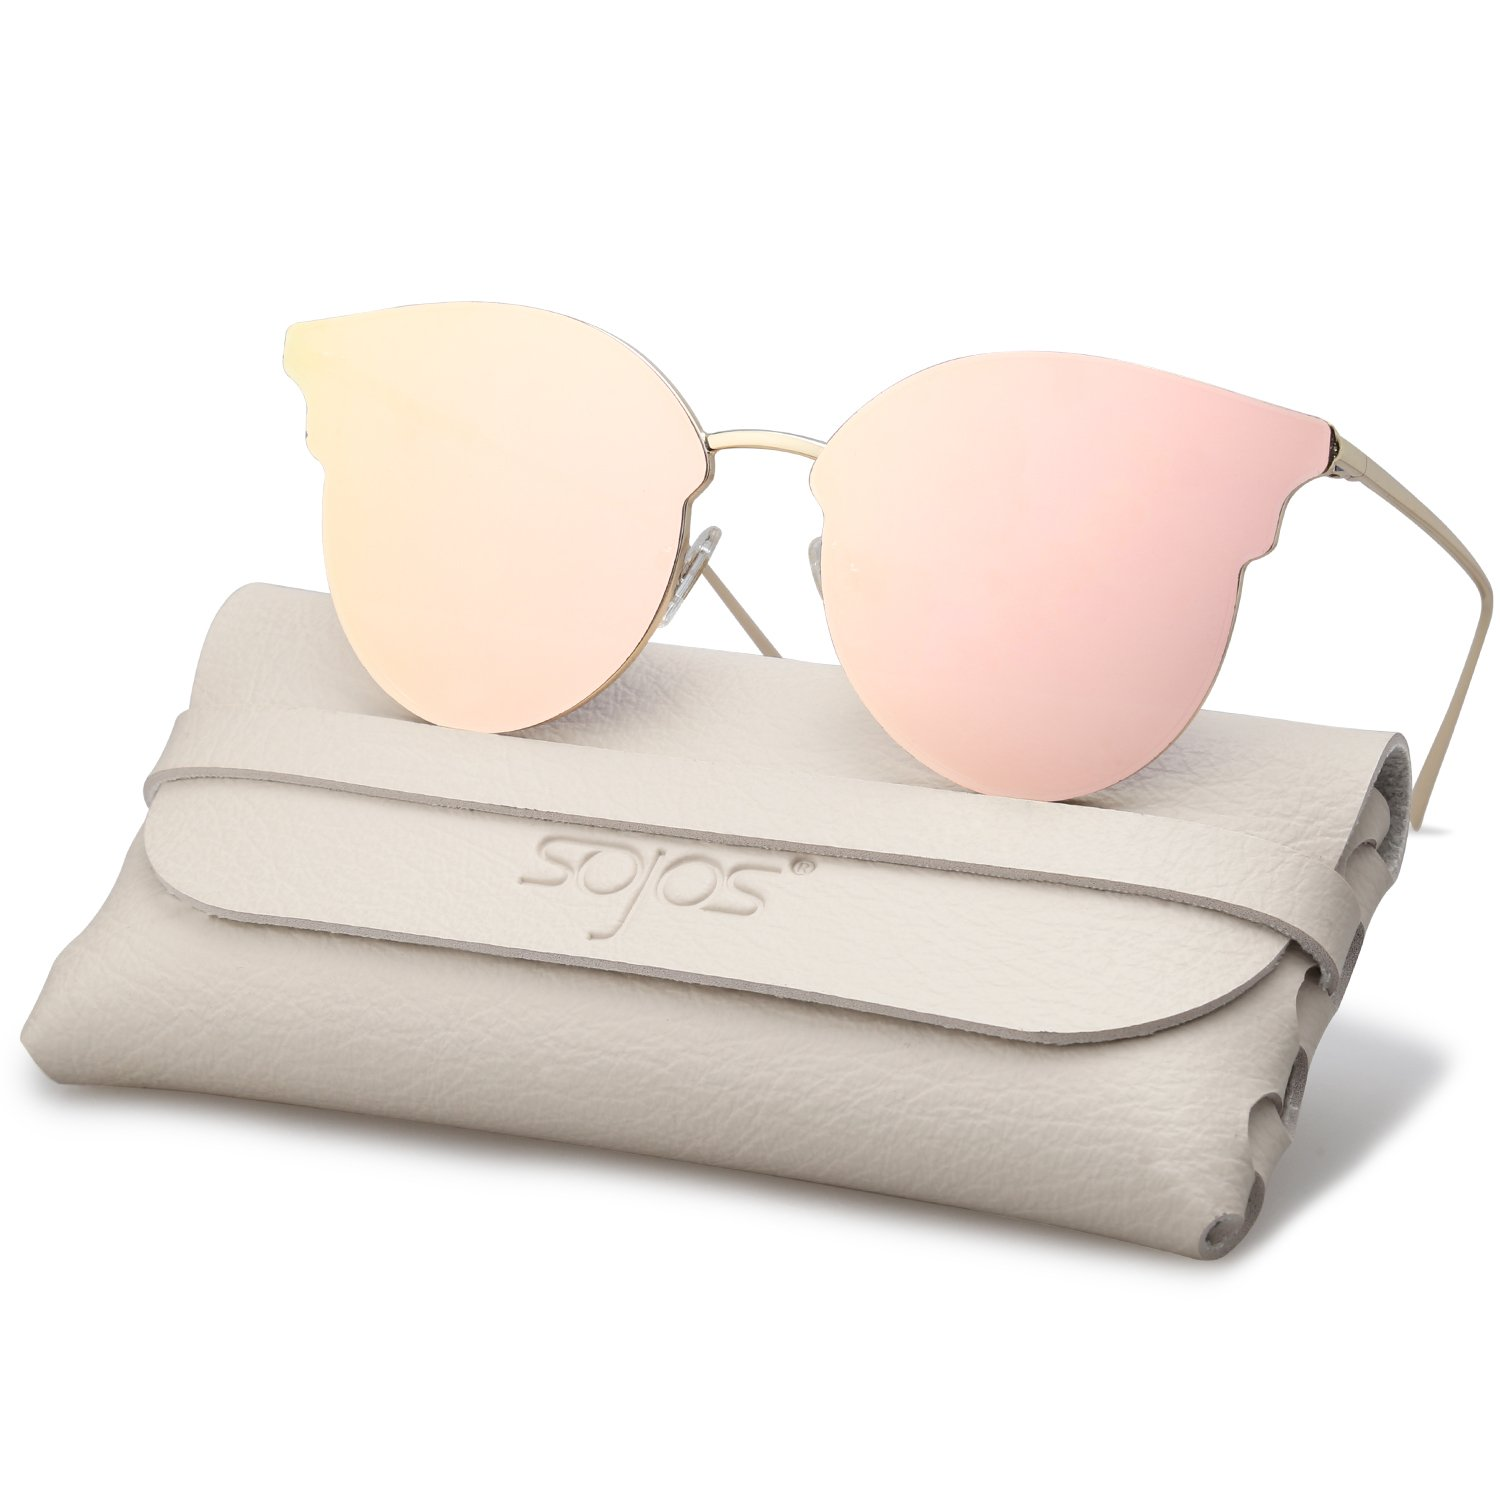 SojoS Fashion Oversized Cateye Sunglasses for Women Flat Mirrored Lens SJ1055 (1055SC2 Gold Frame/Pink Mirrored Lens, 55)